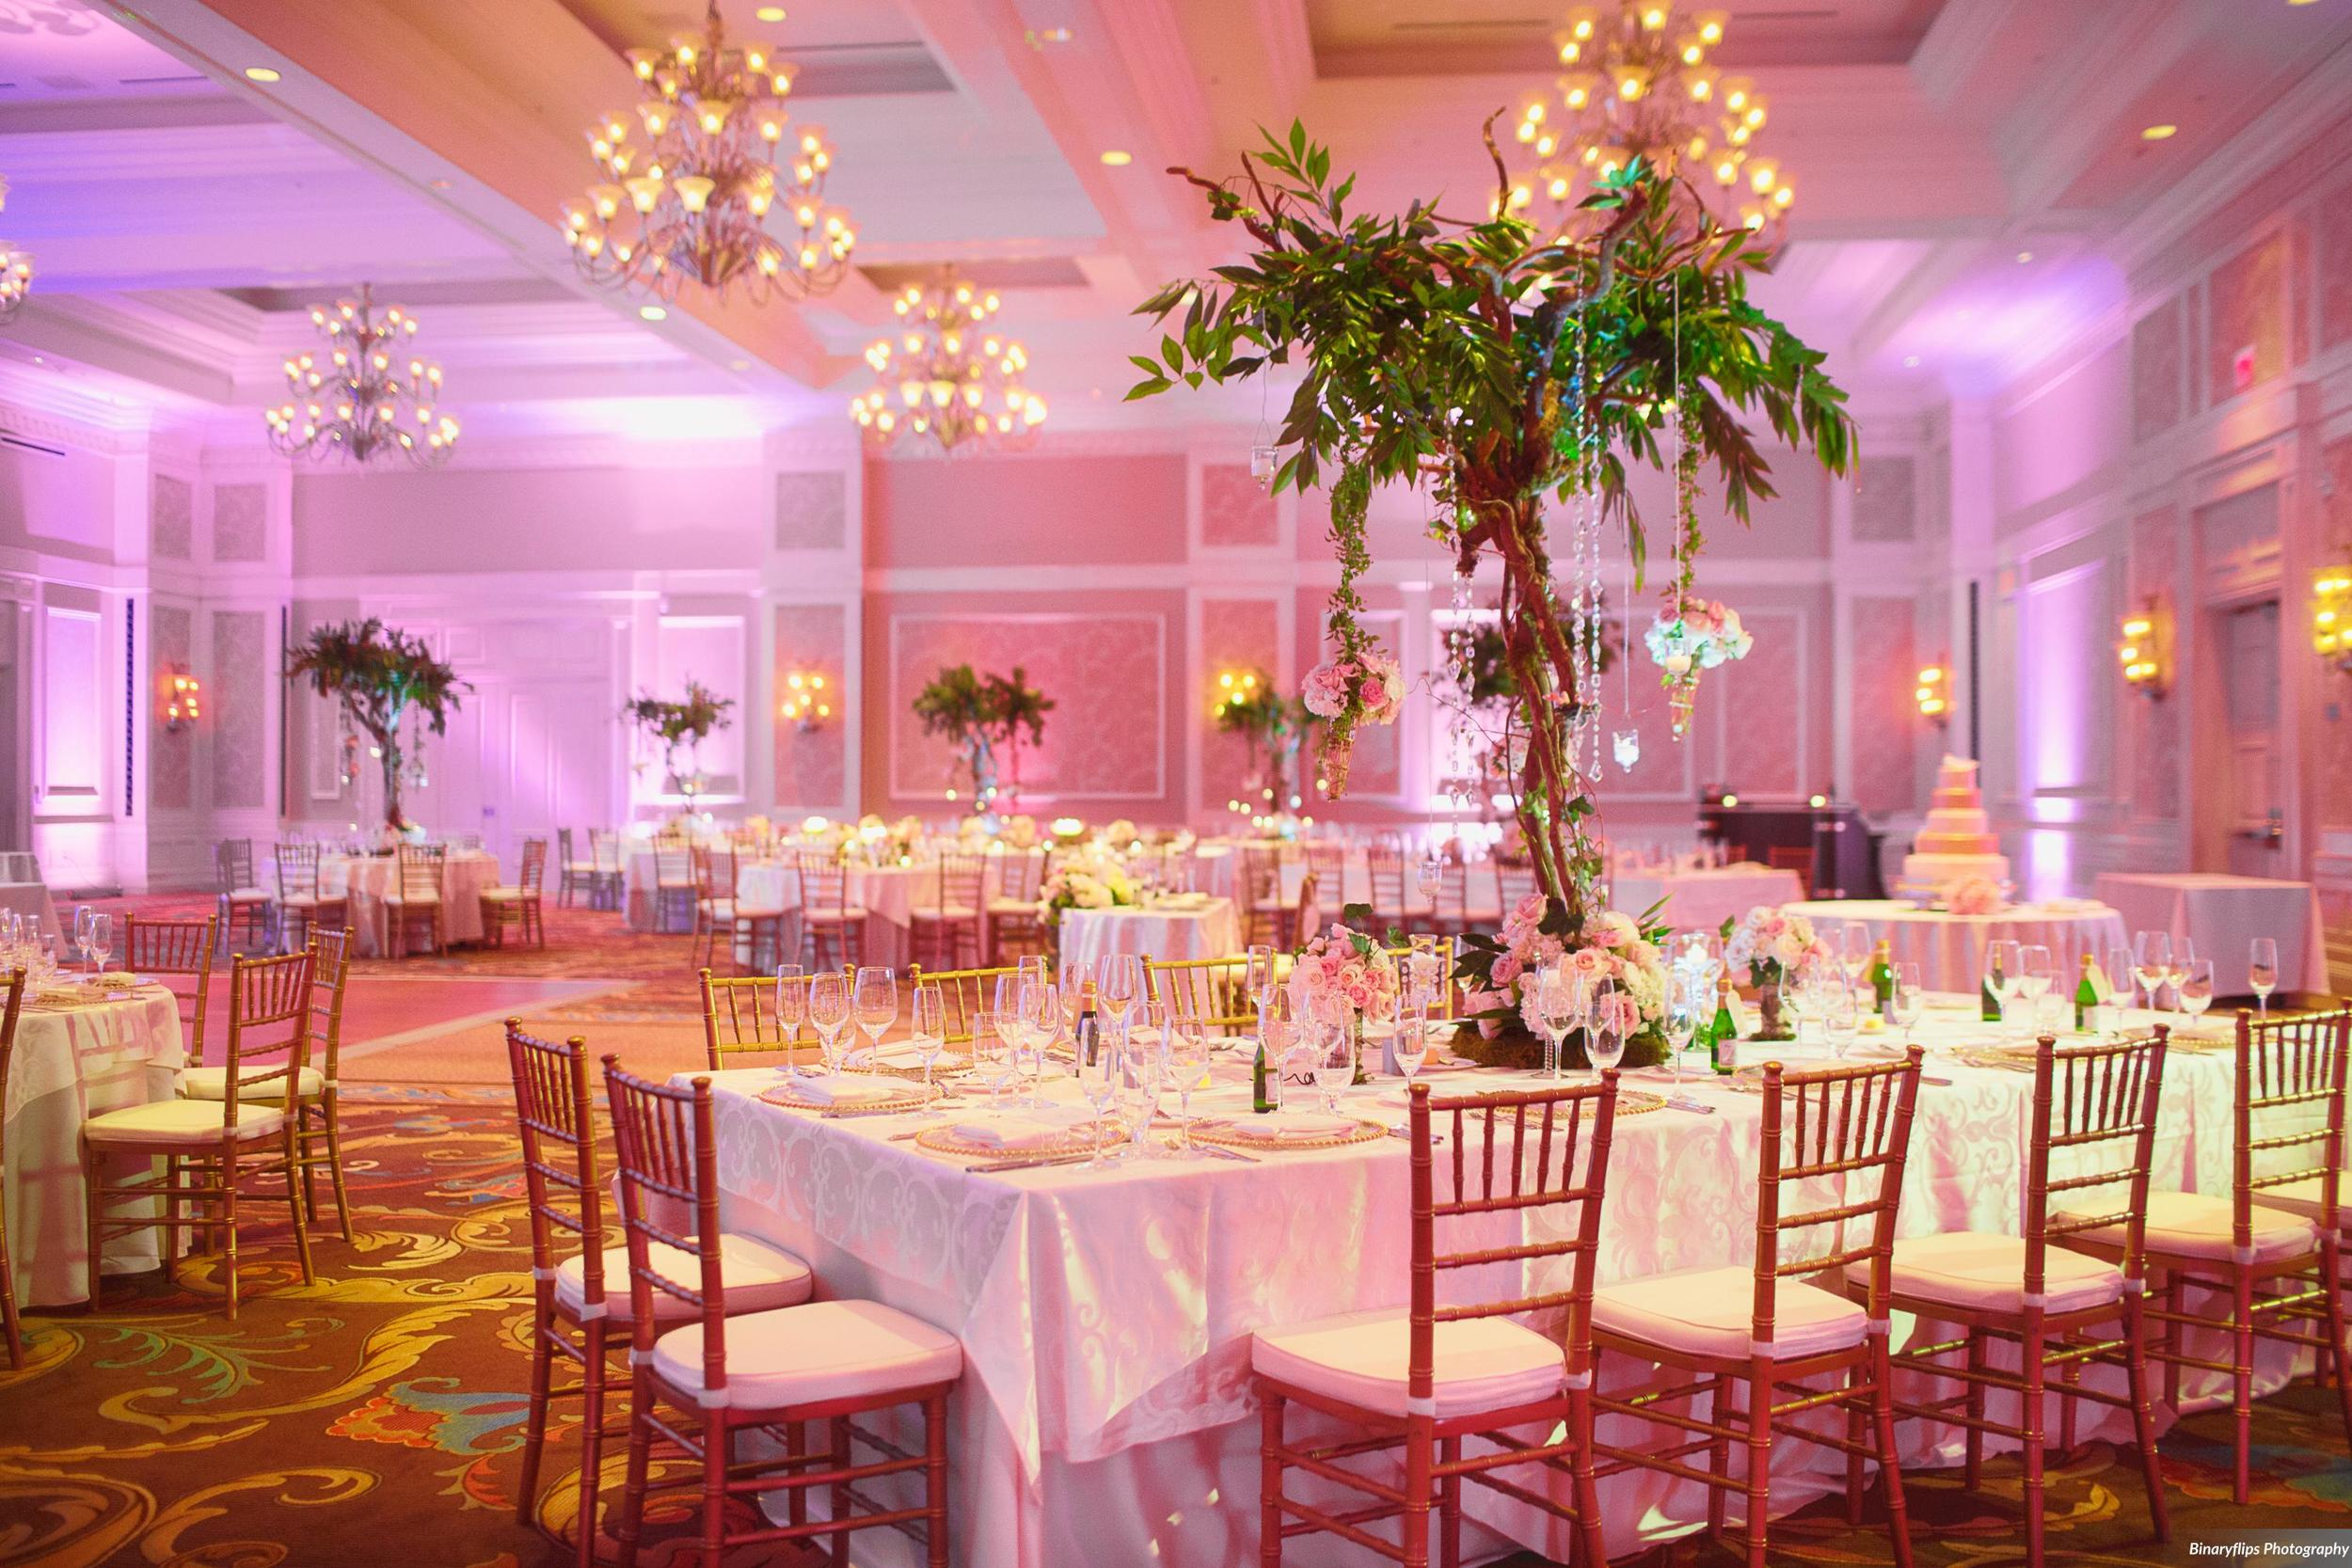 Wedding Photography: Binaryflips | Wedding Reception: Waldorf Astoria Orlando